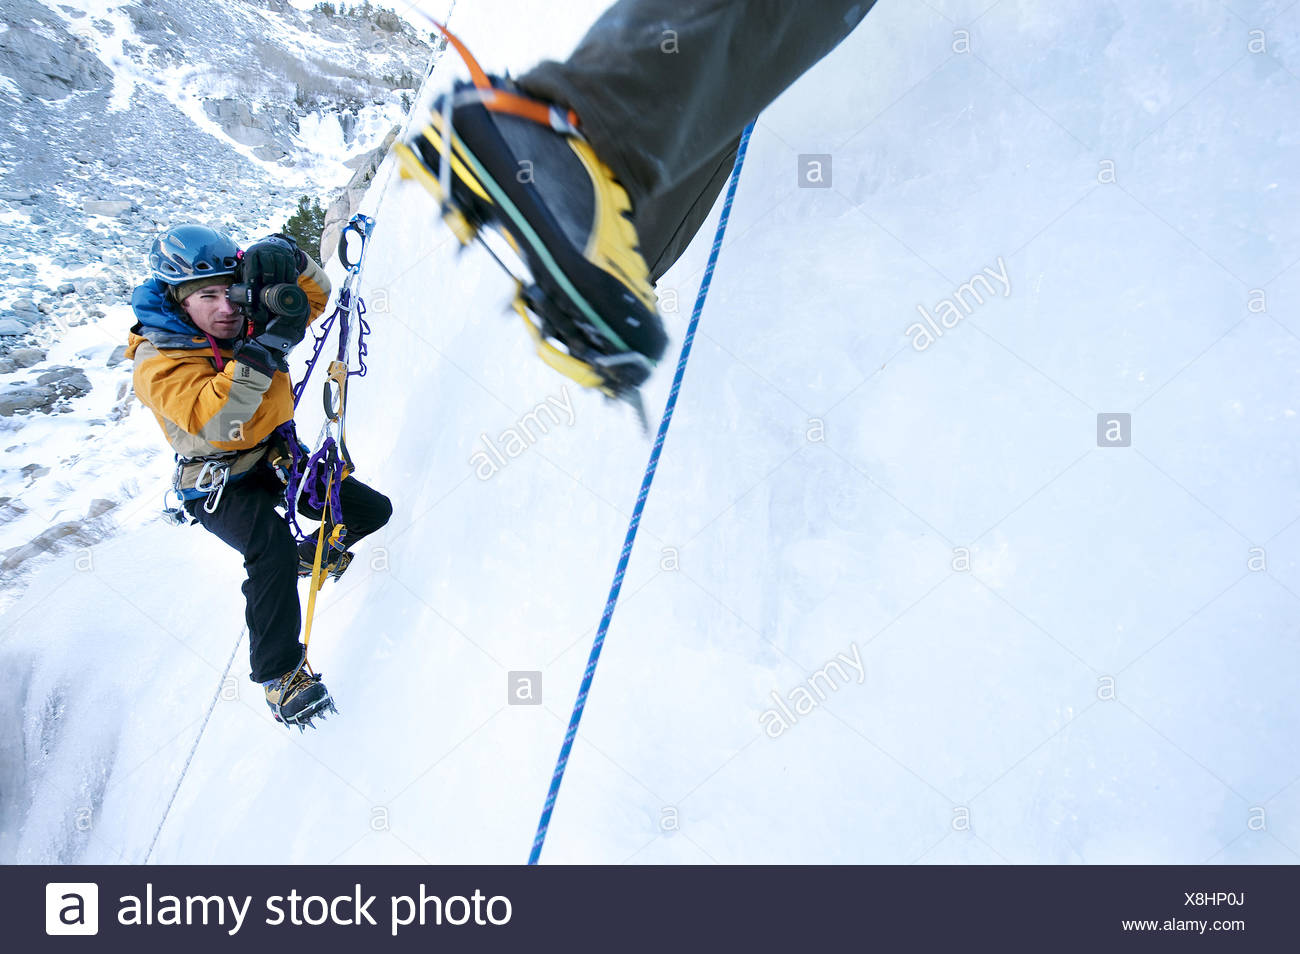 A photographer photographs an ice climber in Calif. - Stock Image